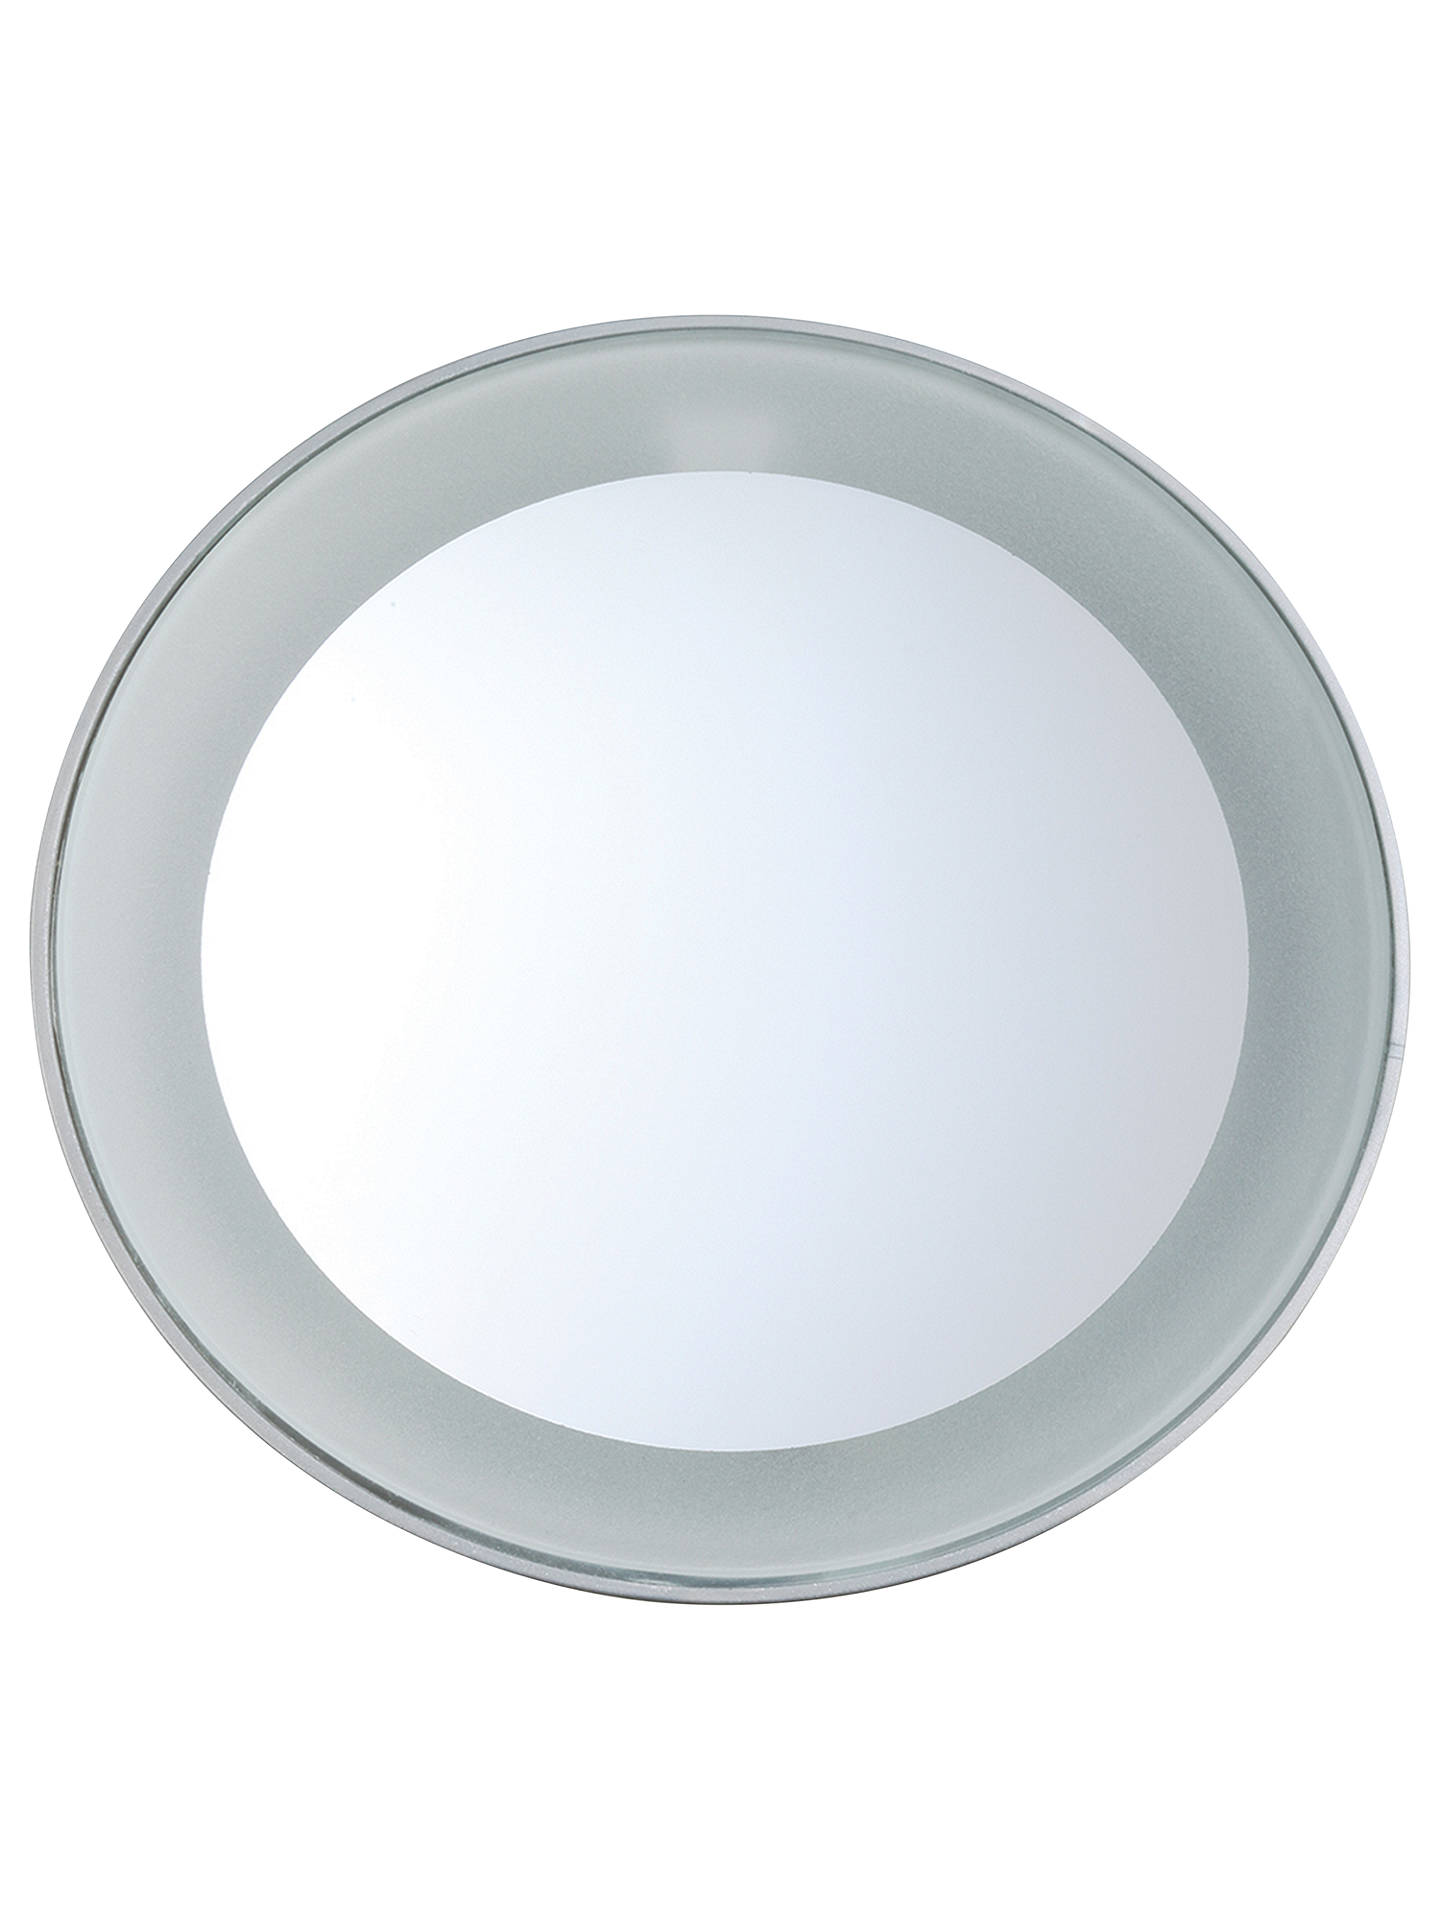 Tweezerman Led 15x Magnifying Mirror At John Lewis Amp Partners